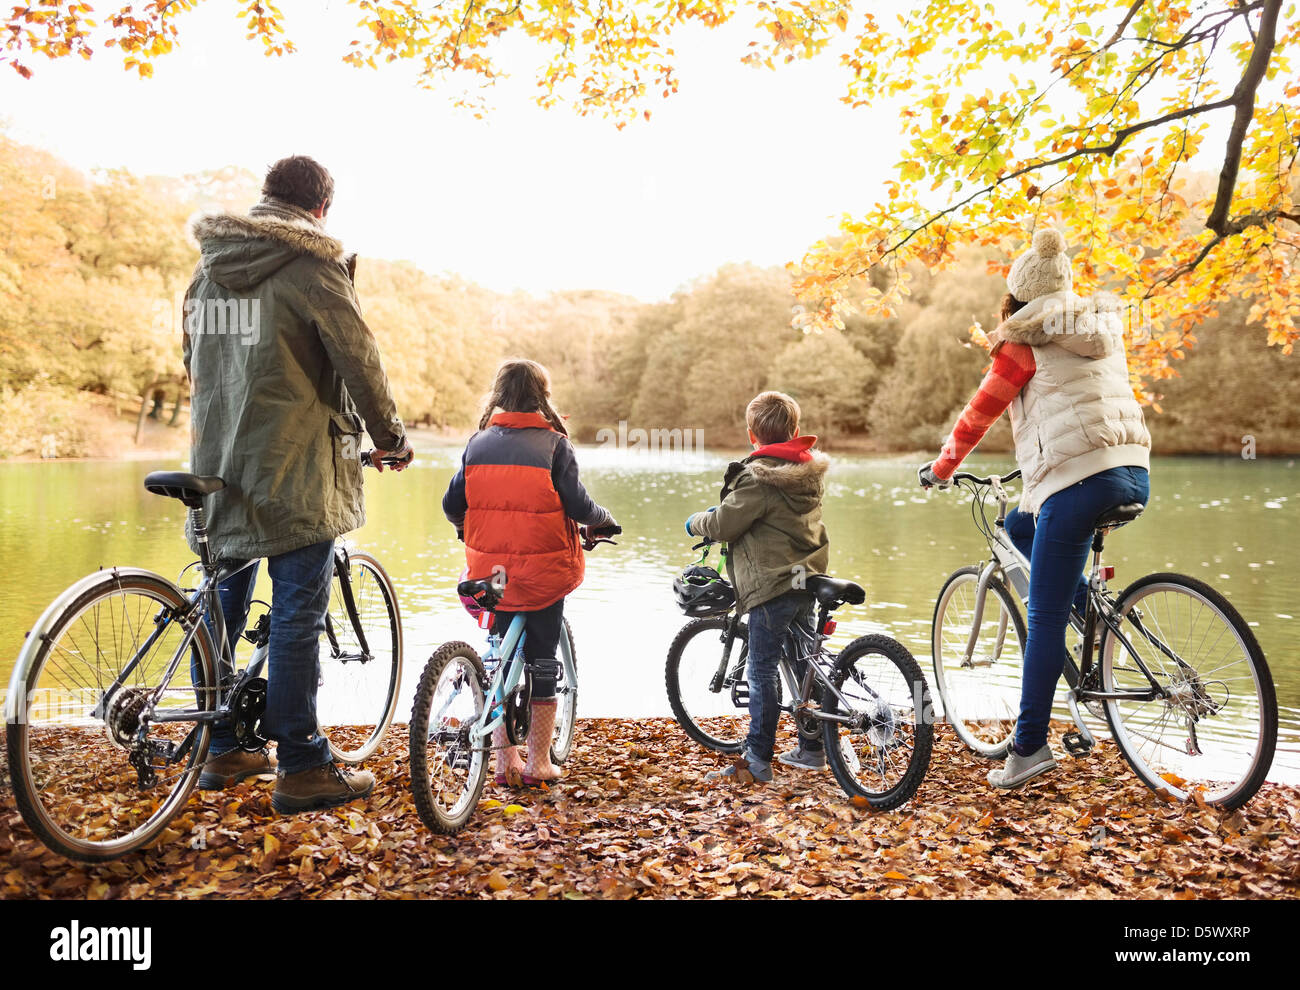 Family sitting on bicycles together in park - Stock Image